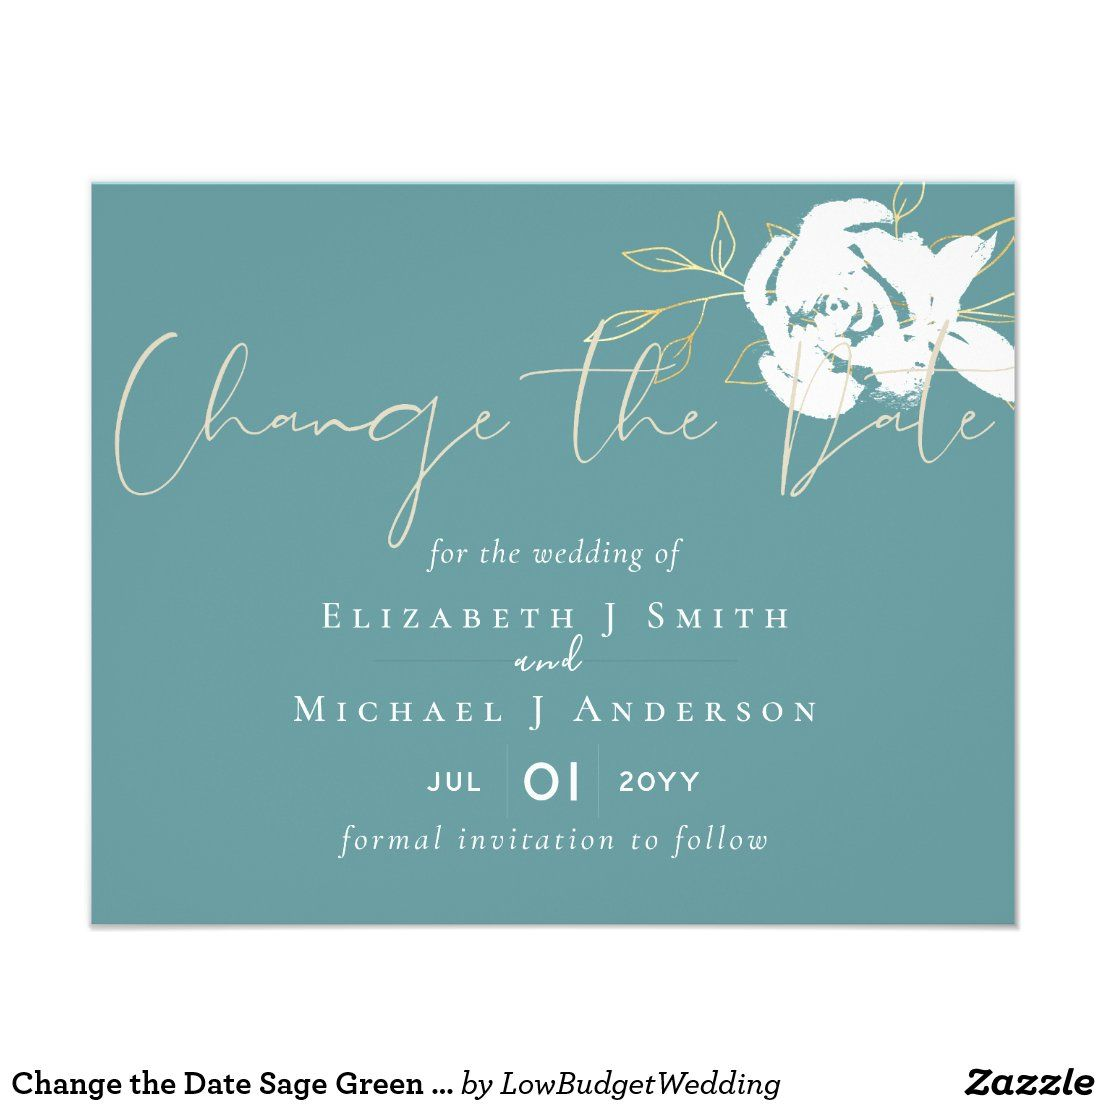 Change The Date Sage Green White Gold Budget Flyer Zazzle Com In 2020 Funny Wedding Cards Bridal Shower Invitation Cards Minted Wedding Invitations